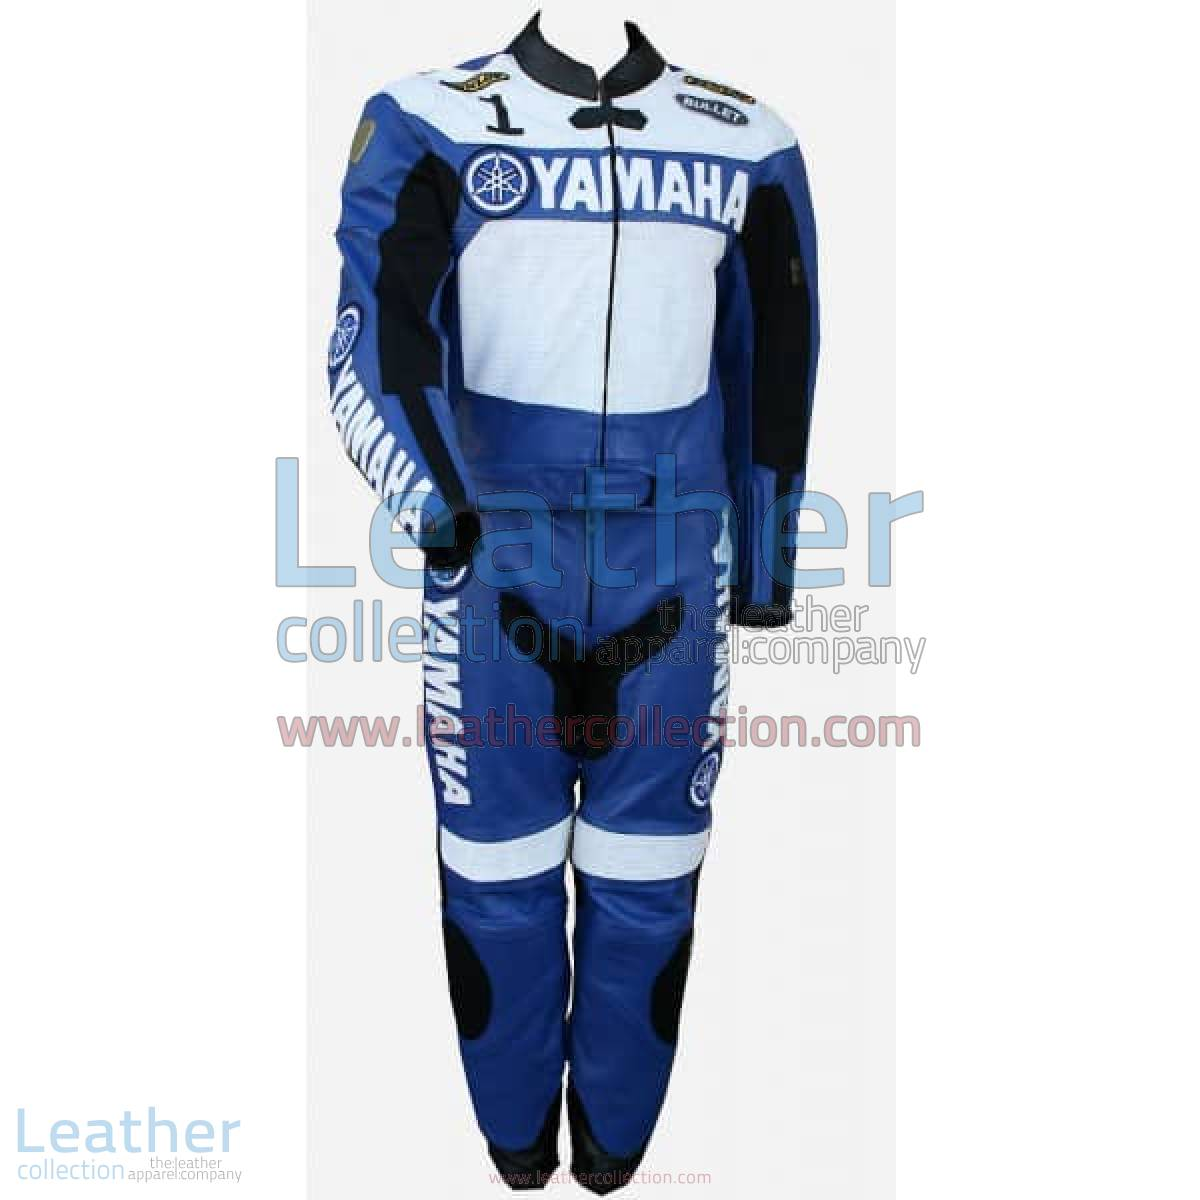 Yamaha Racing Leather Suit Blue / White | racing leather suit,yamaha suit